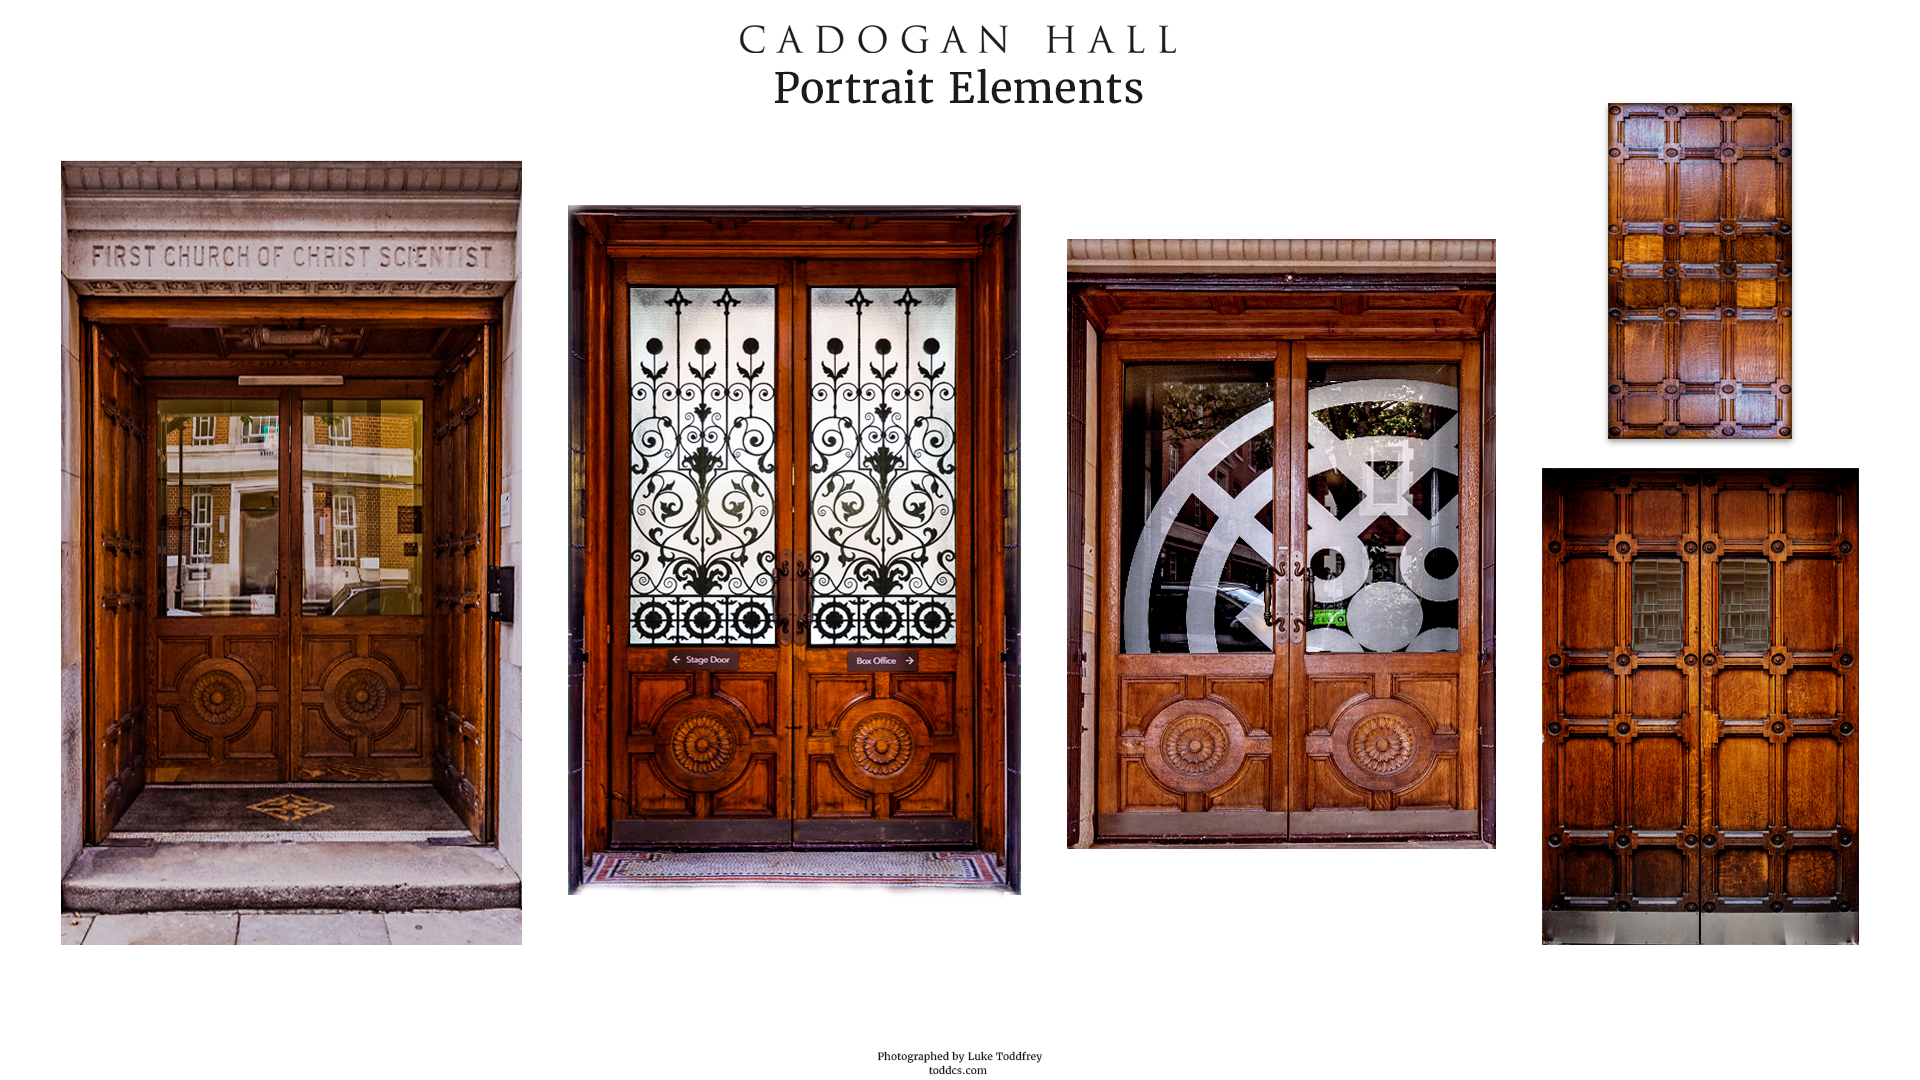 cadogan-hall---portrait_39213879002_o.jpg